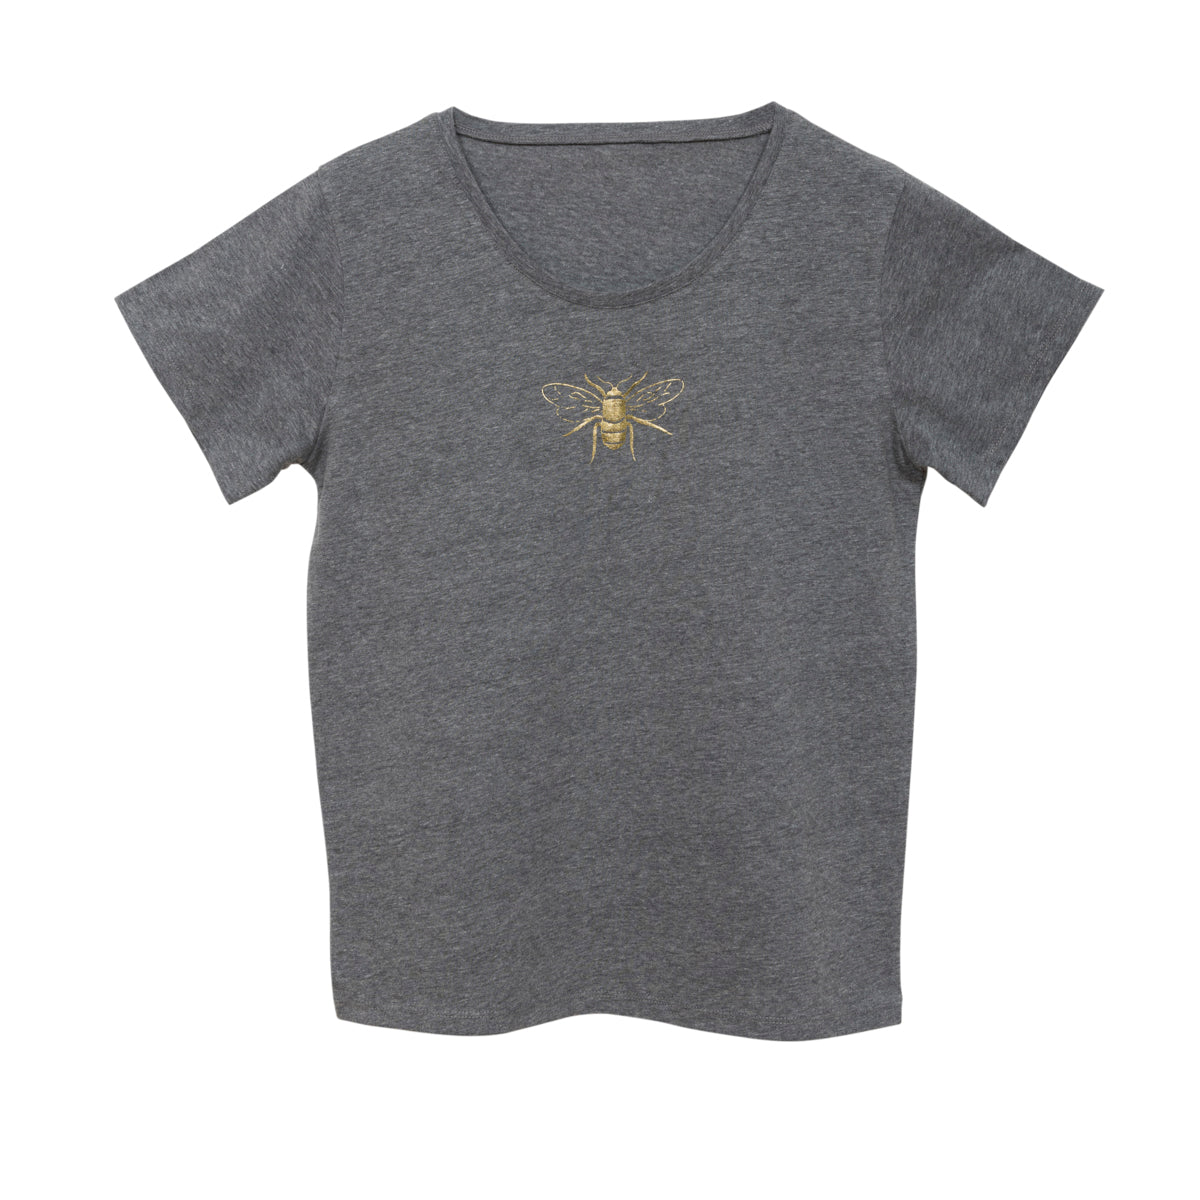 Bees Ladies T-Shirt by Sophie Allport